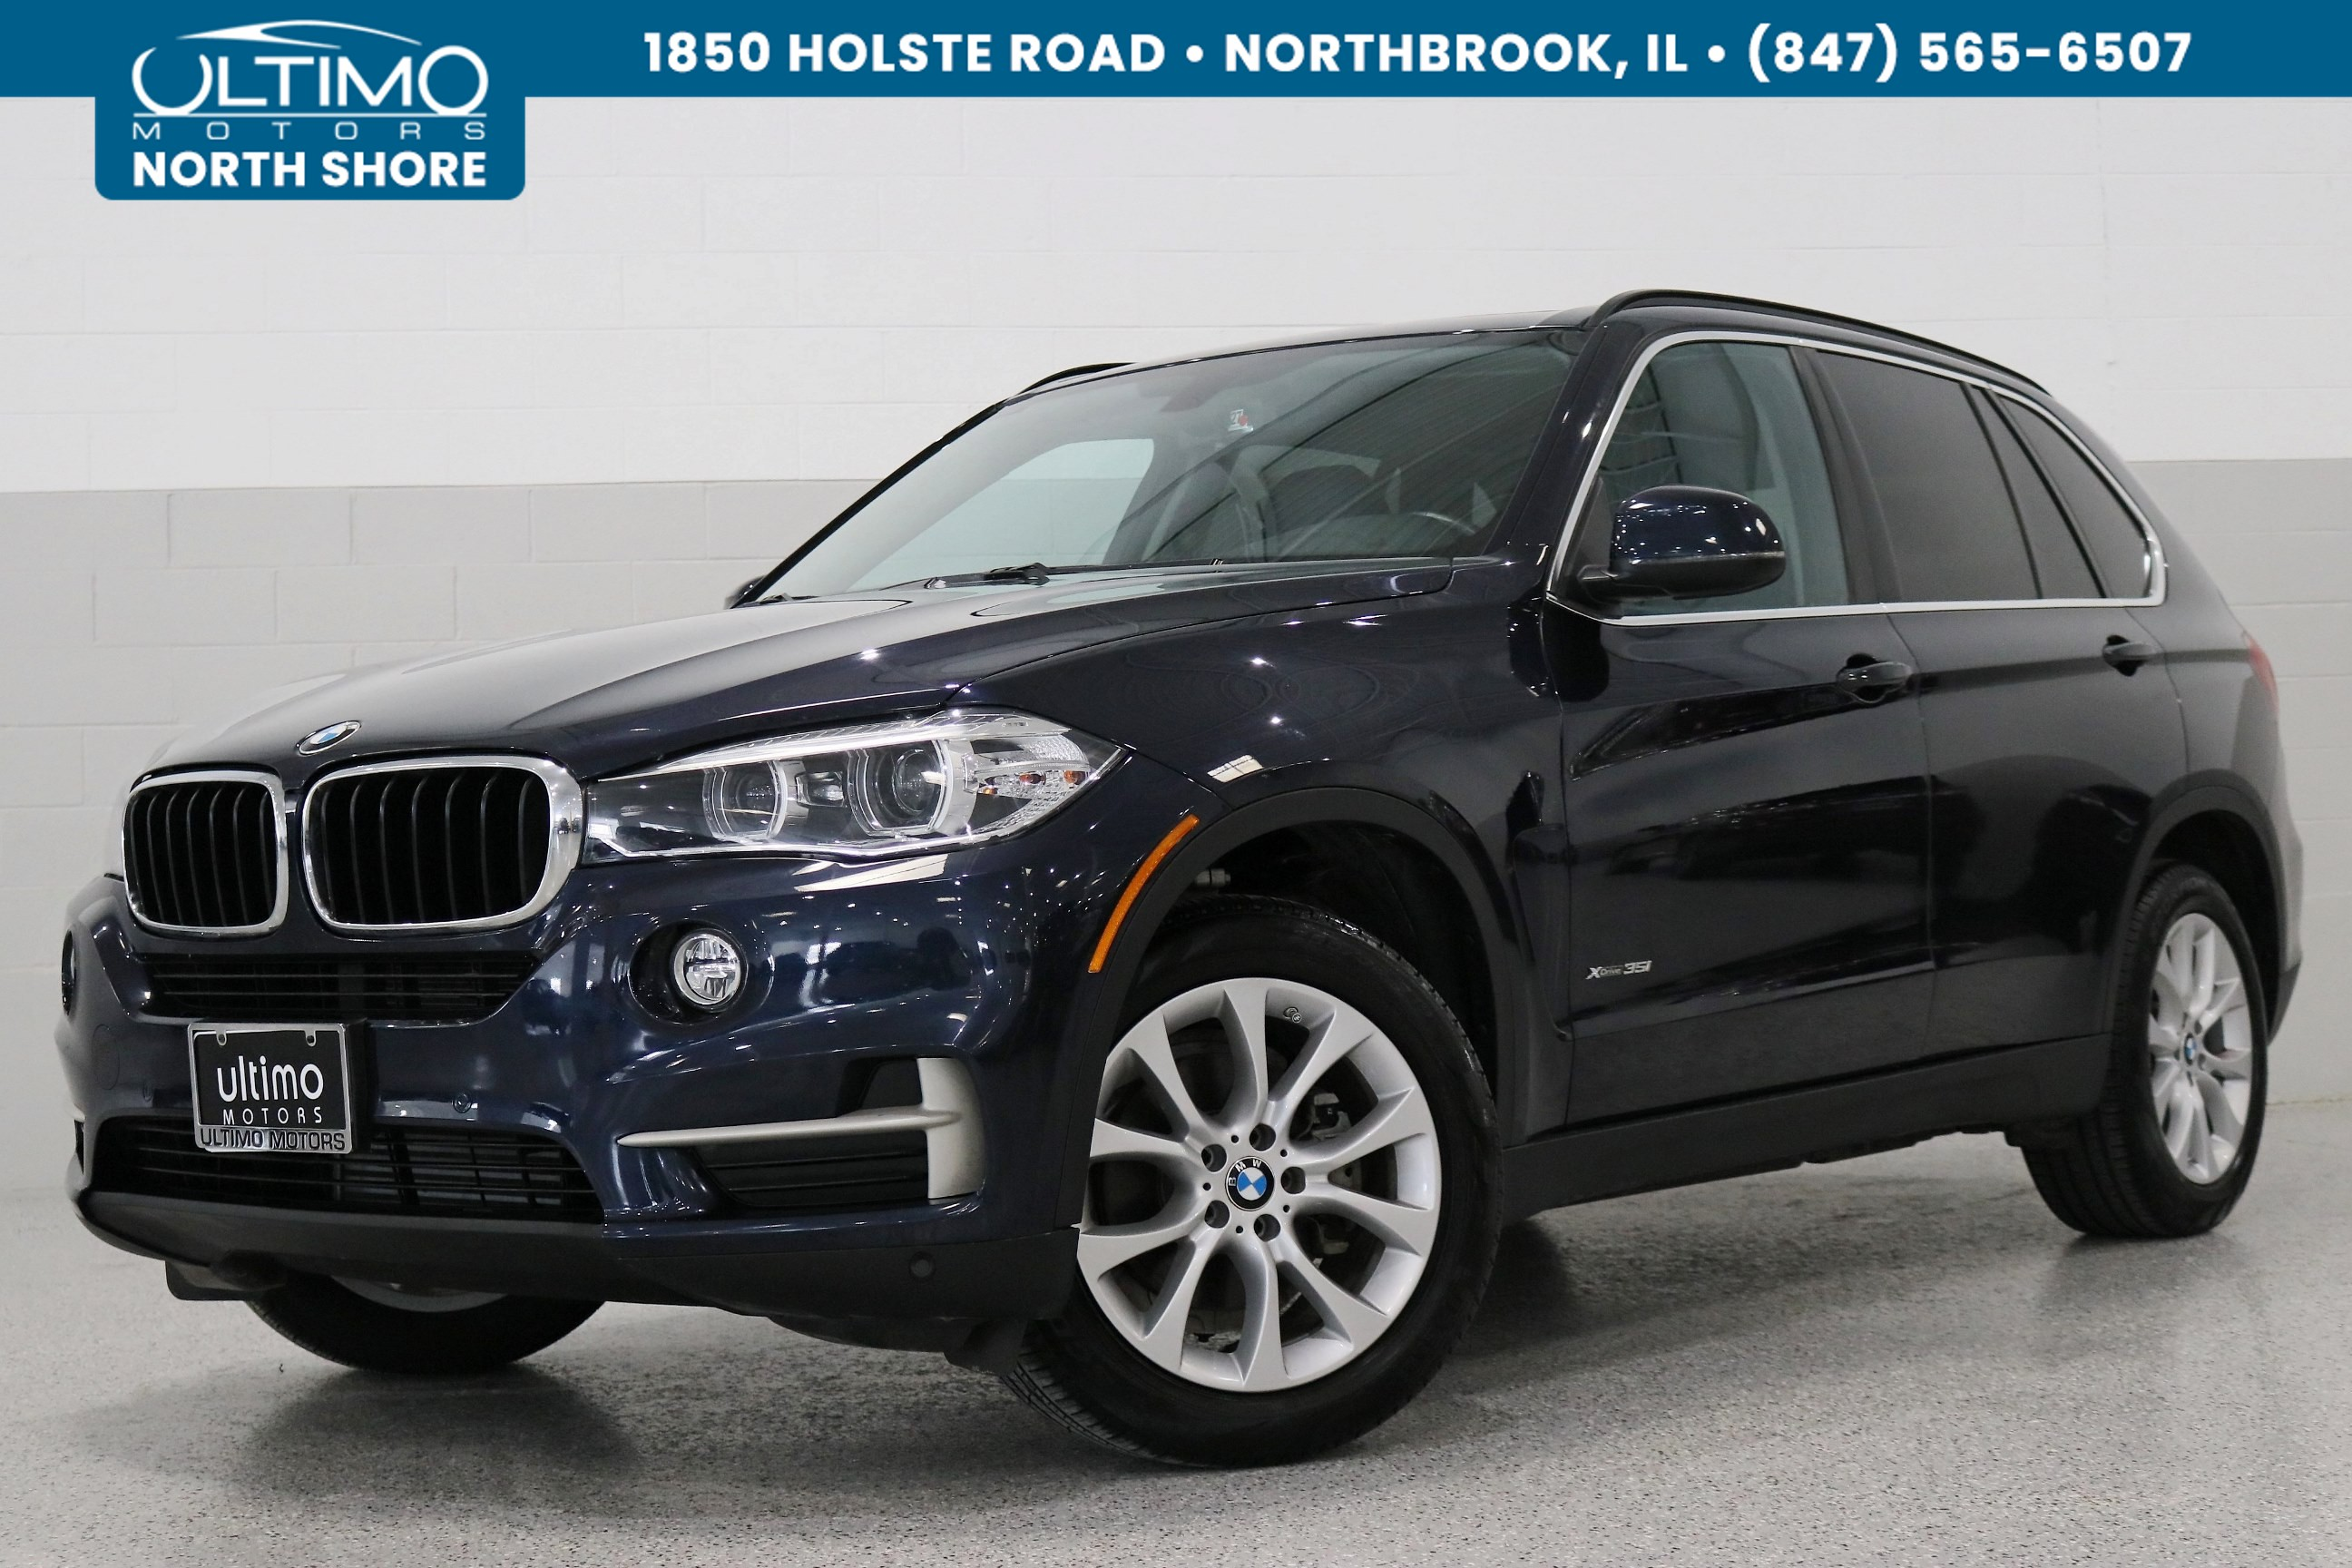 Pre-Owned 2016 BMW X5 xDrive35i, Premium Package, Navigation, Heated Seats.